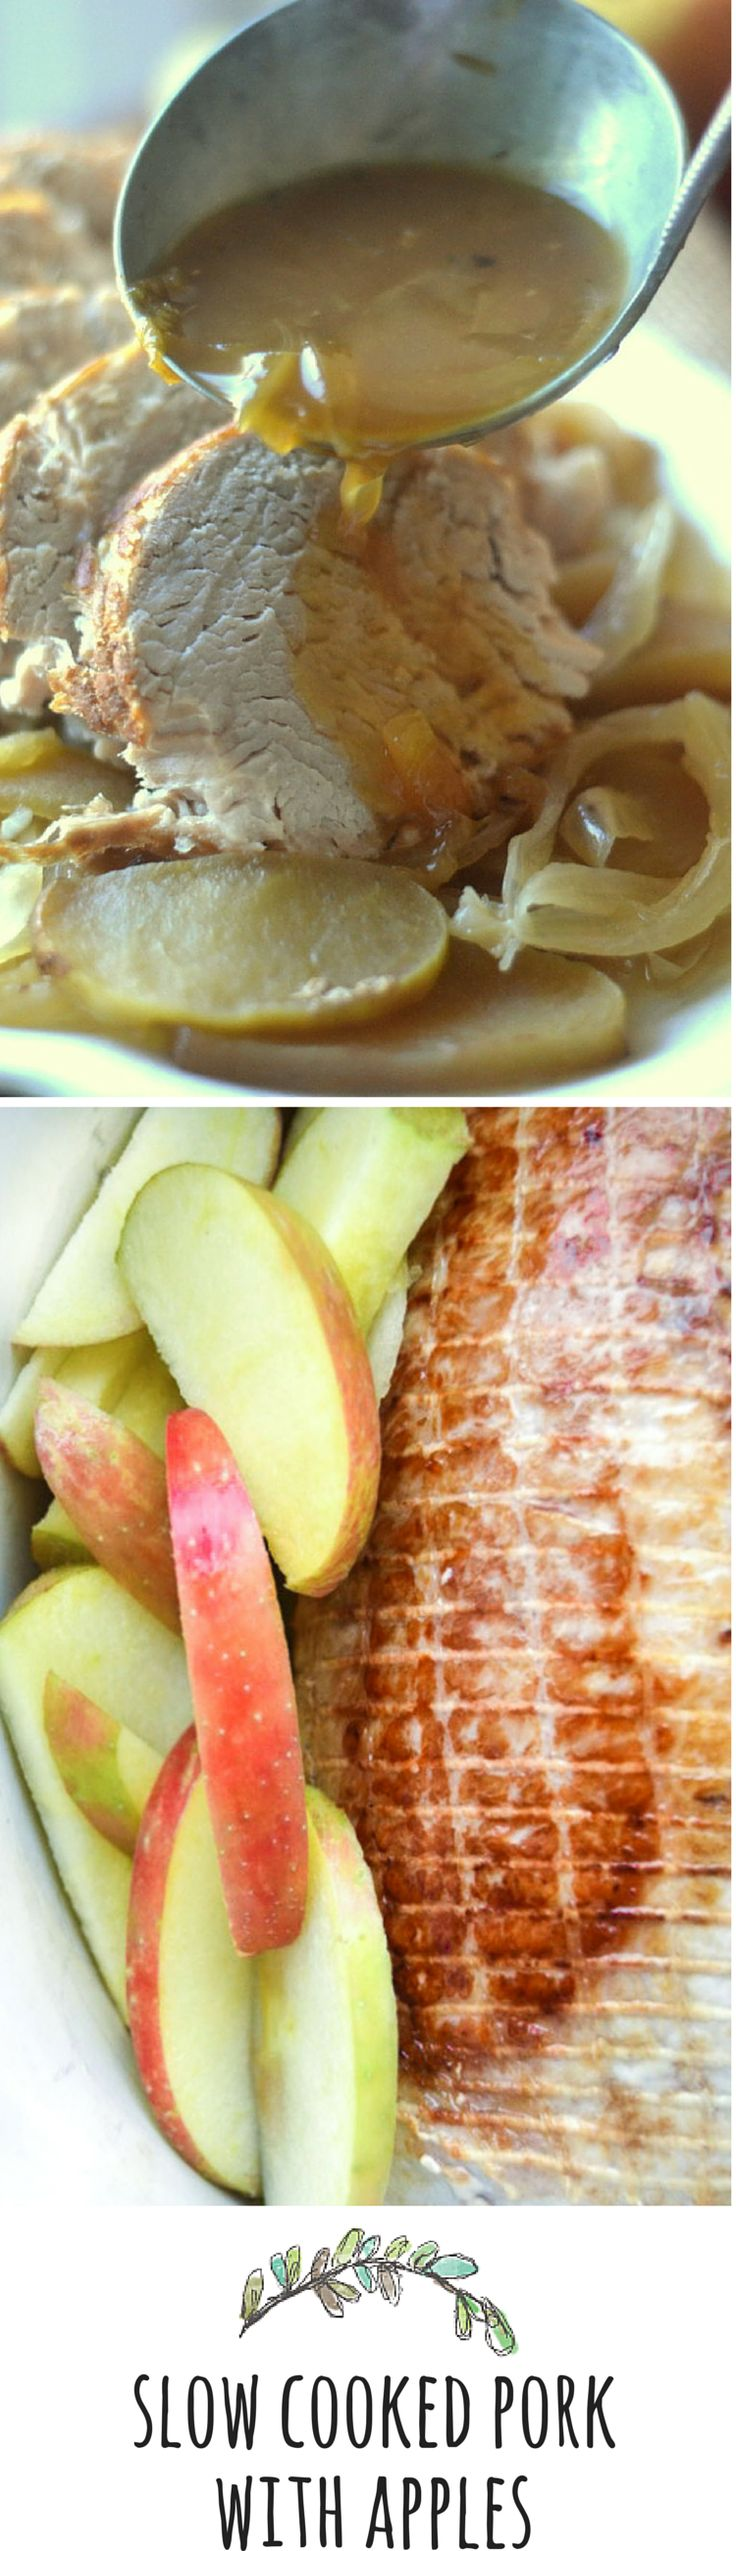 Long slow cooking with hard cider and apples give this pork roast incredible flavor!